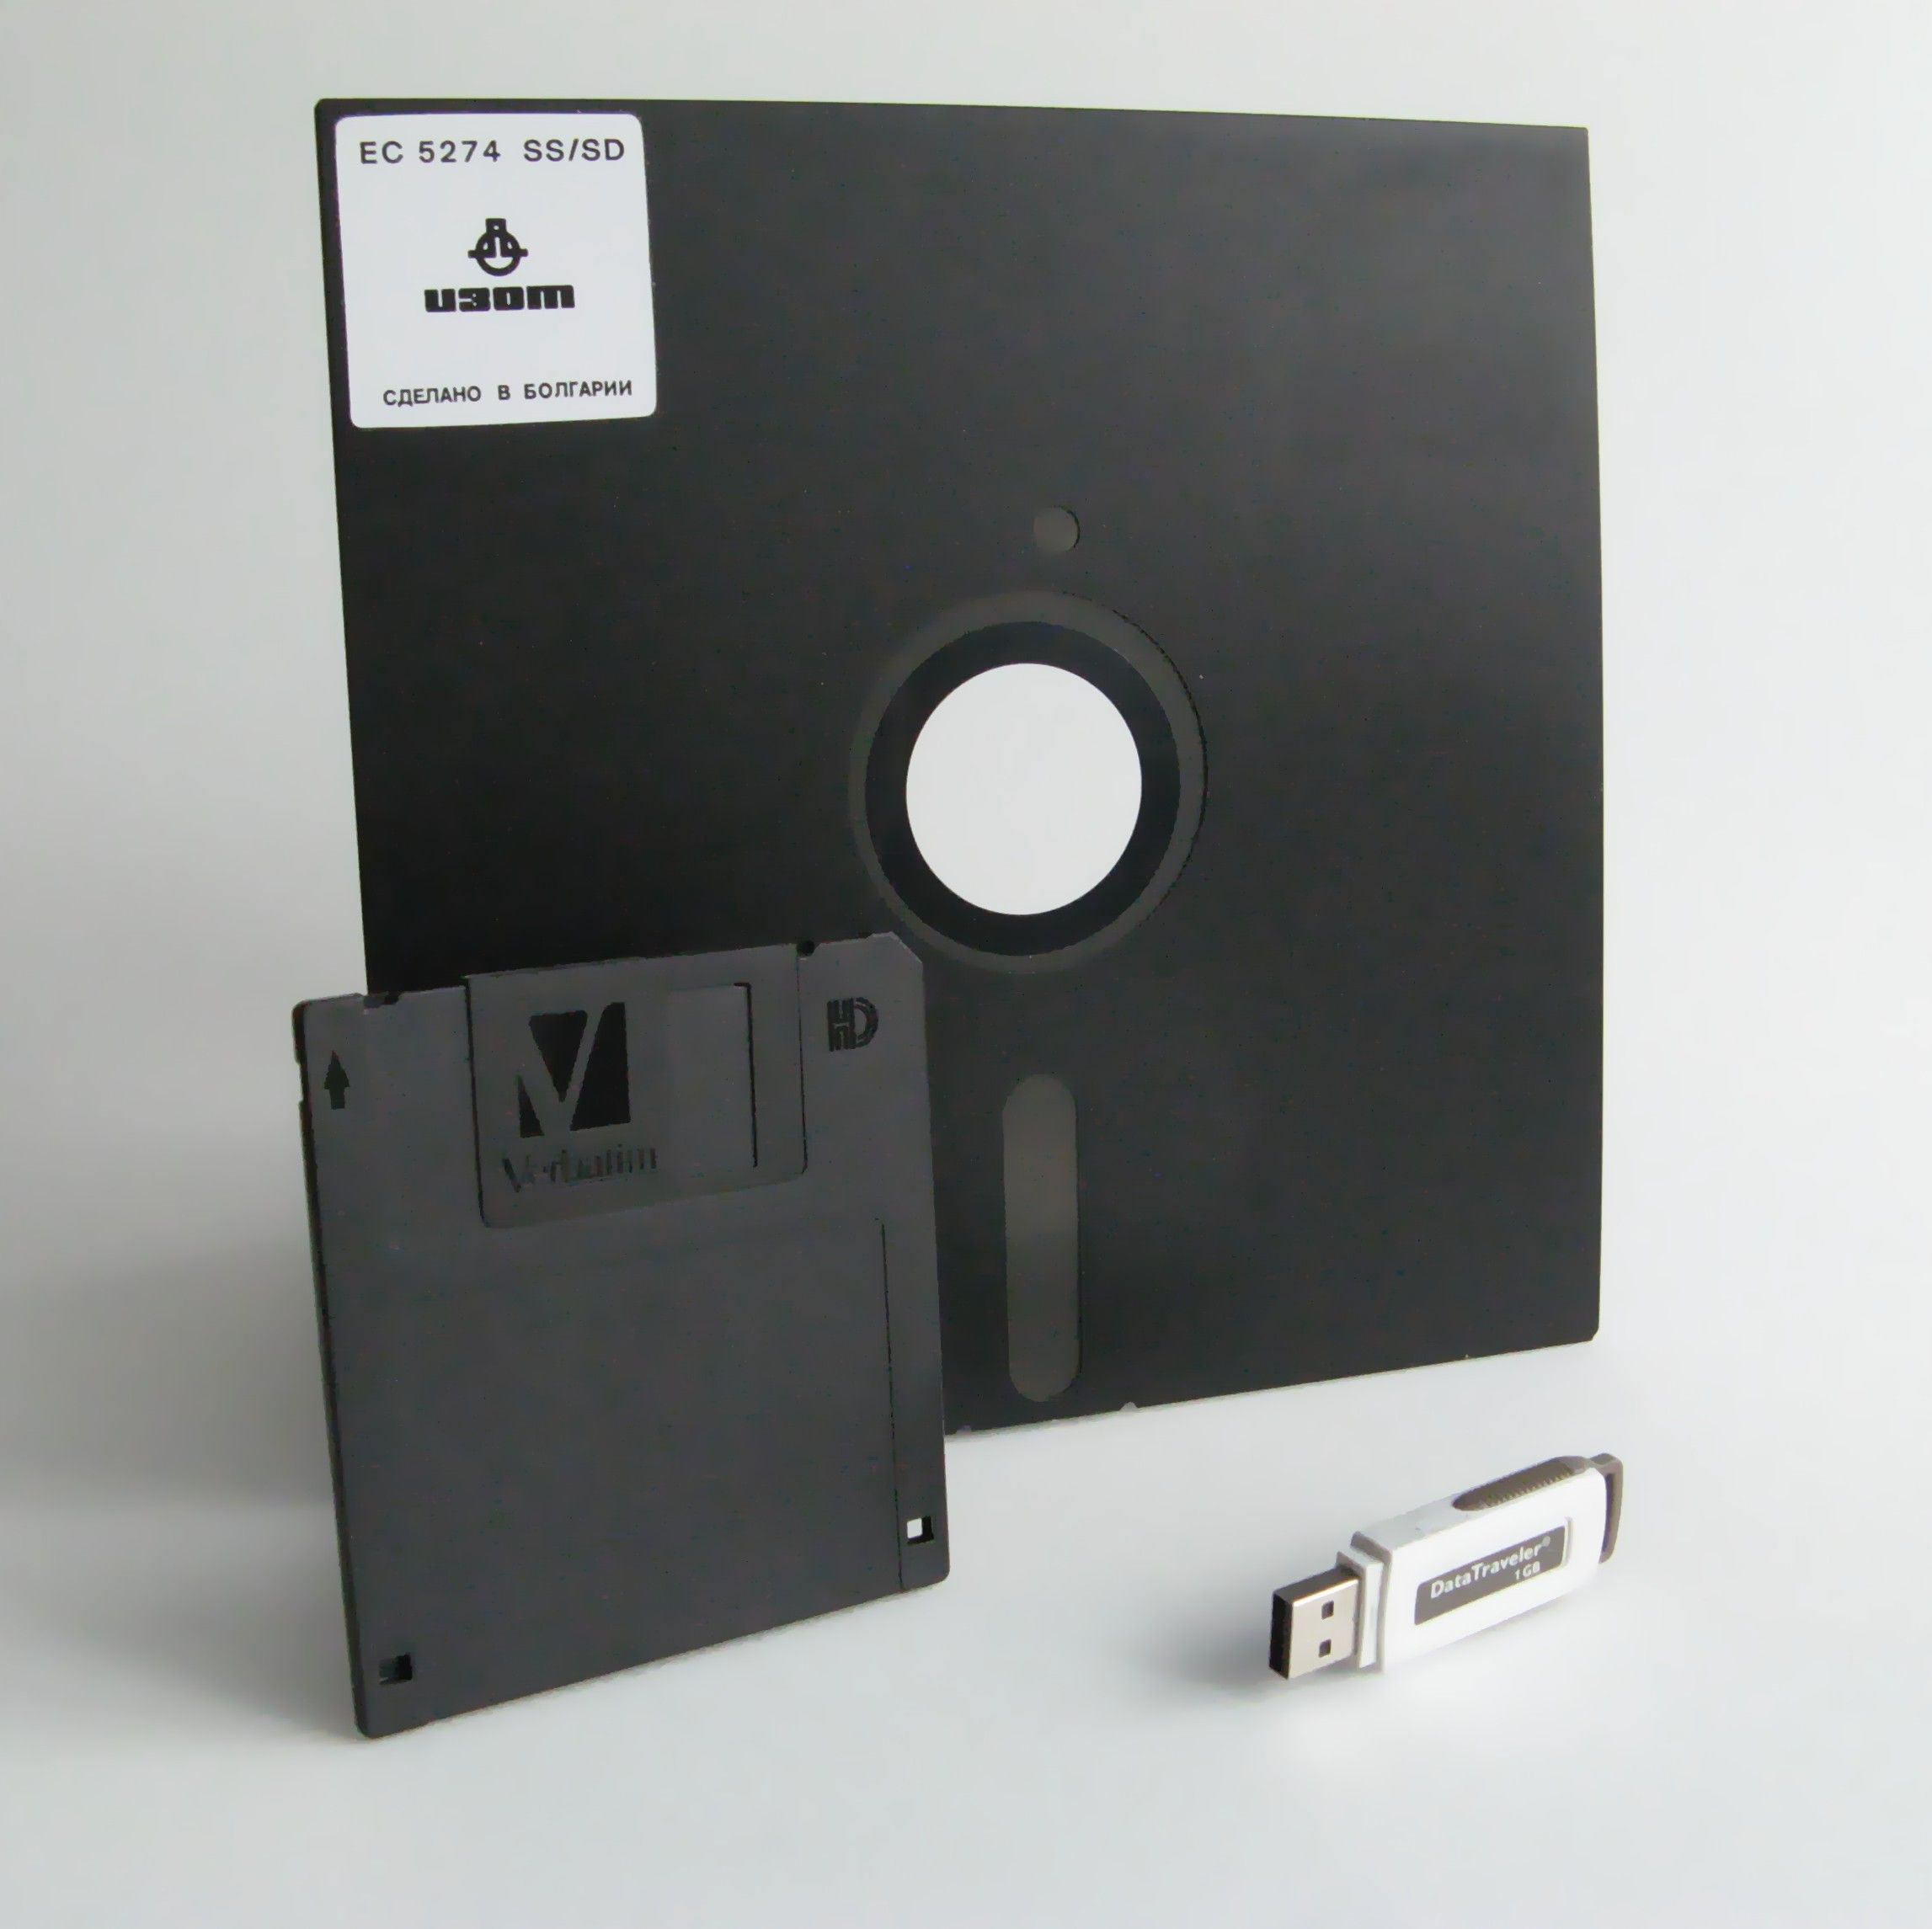 The Floppy Disk The Reel To Reel Computer Tape Evolved Into The 8